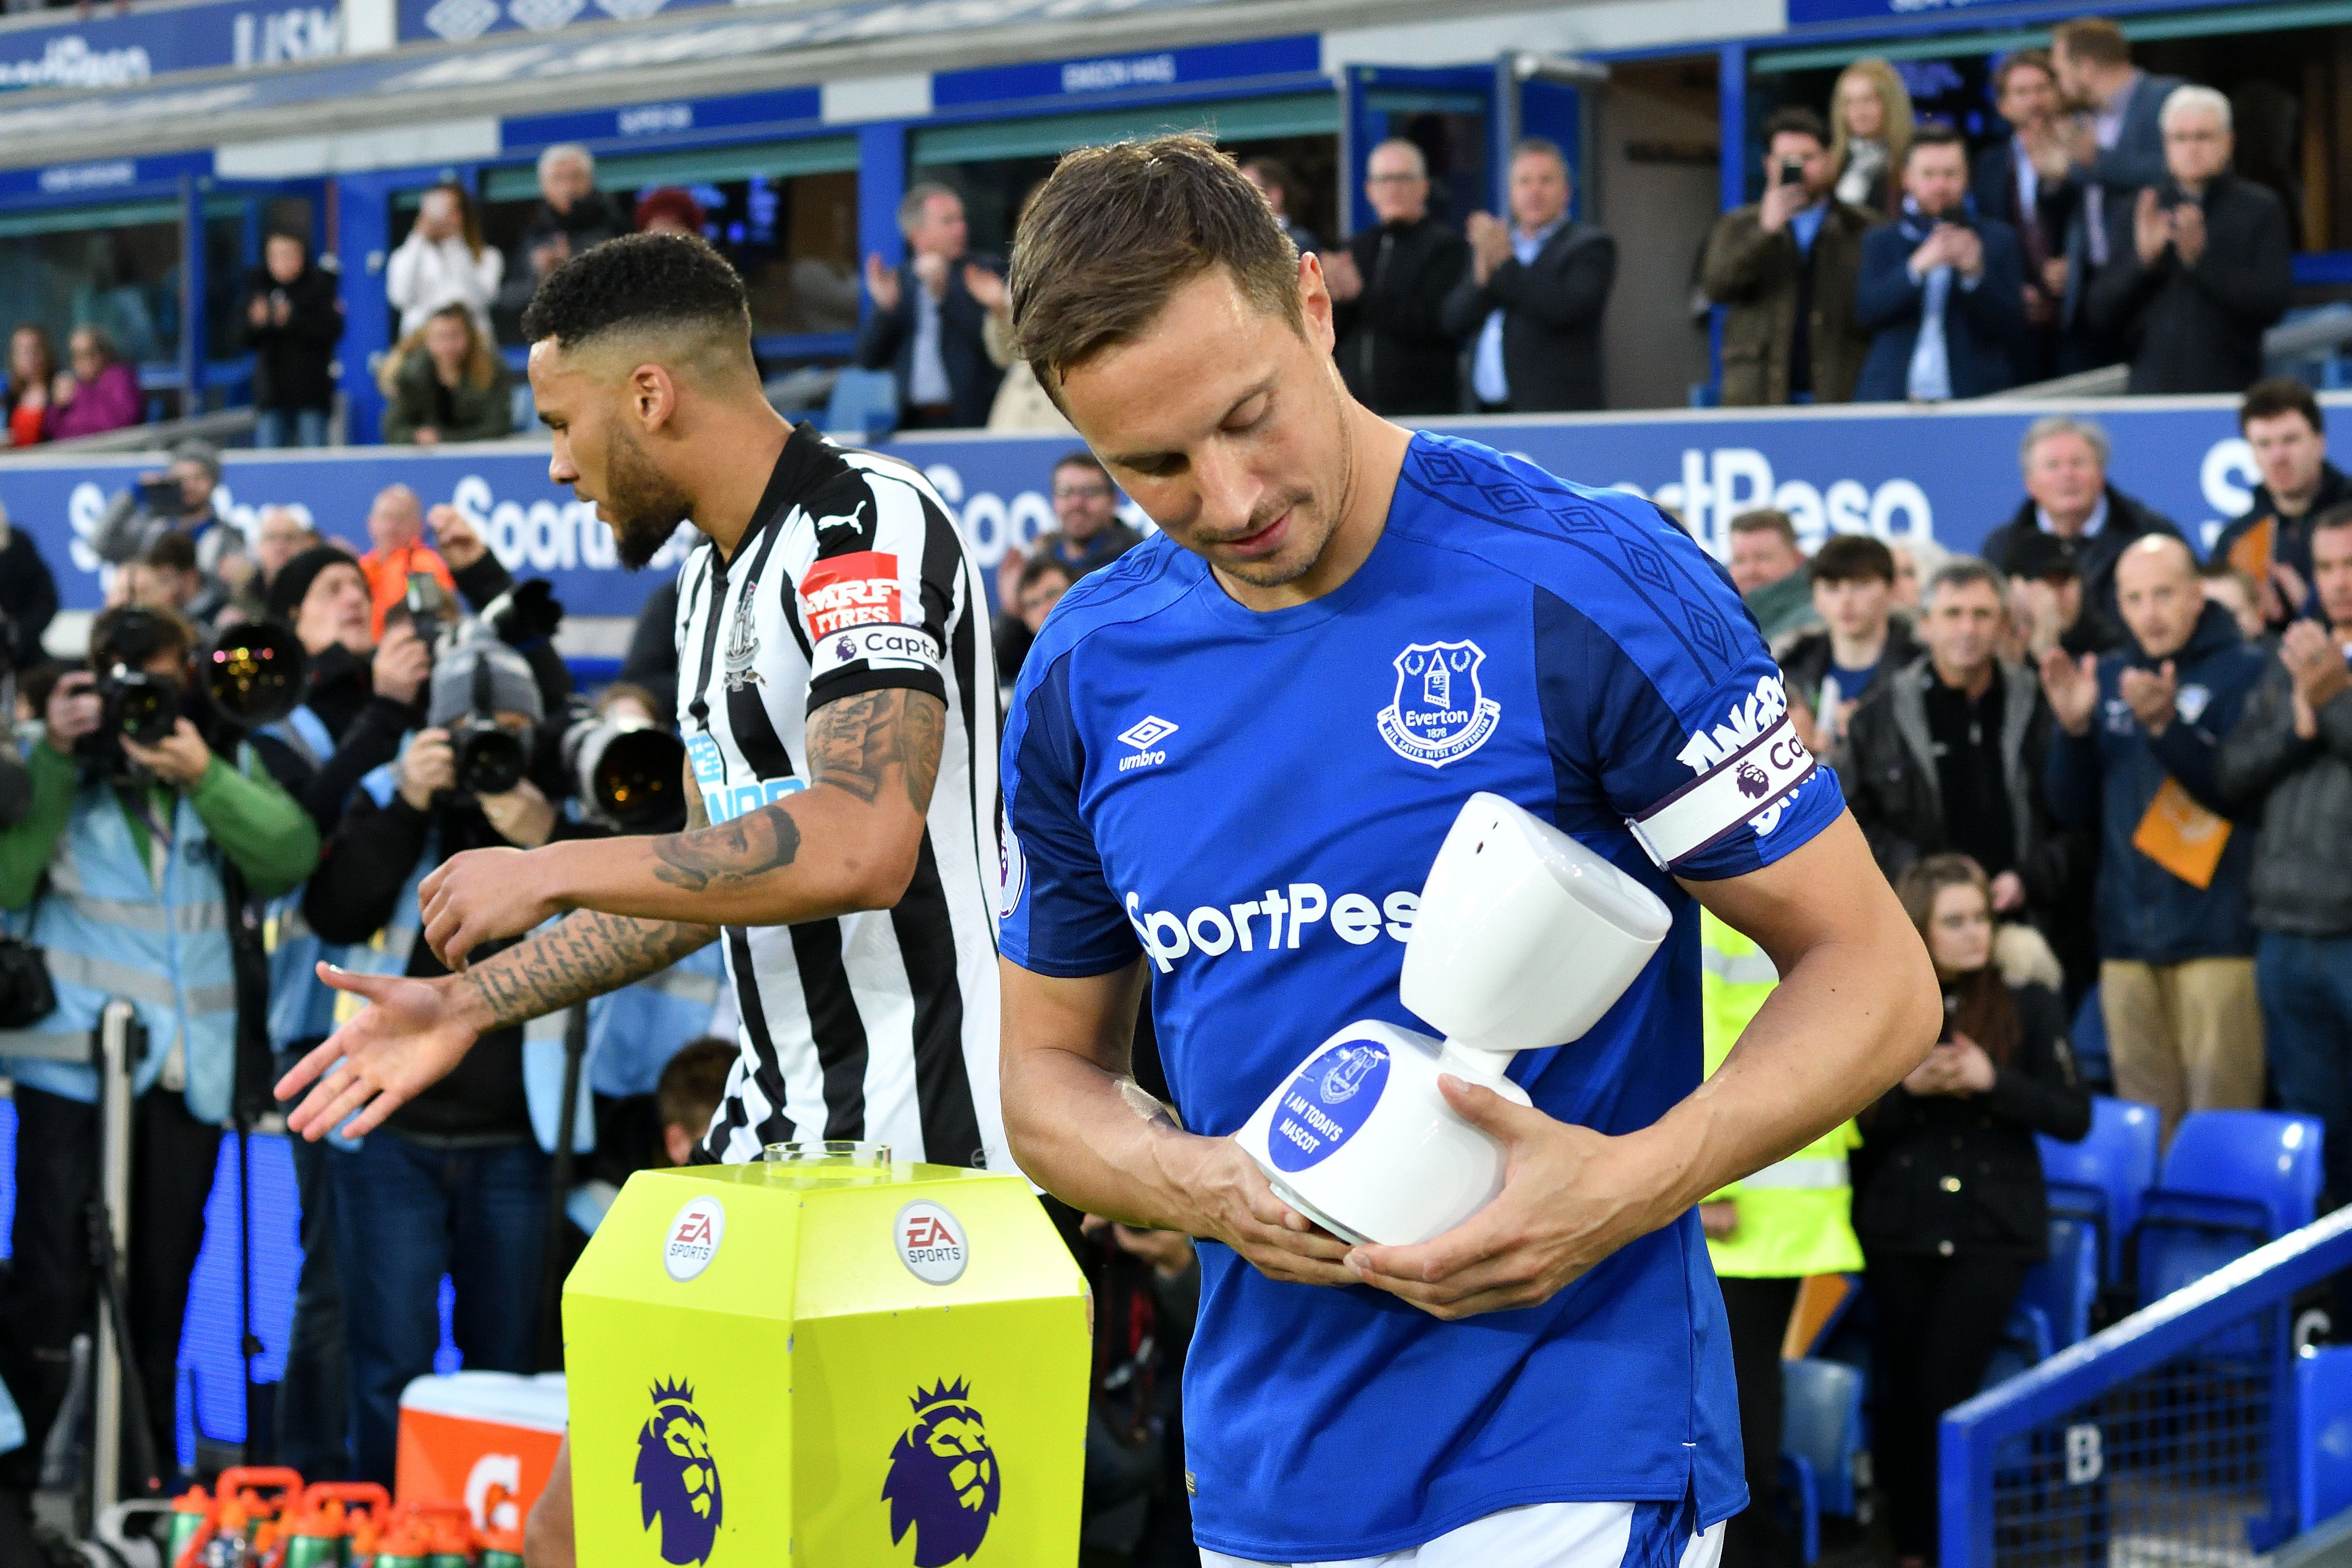 Premier League's first remote mascot appears at Everton